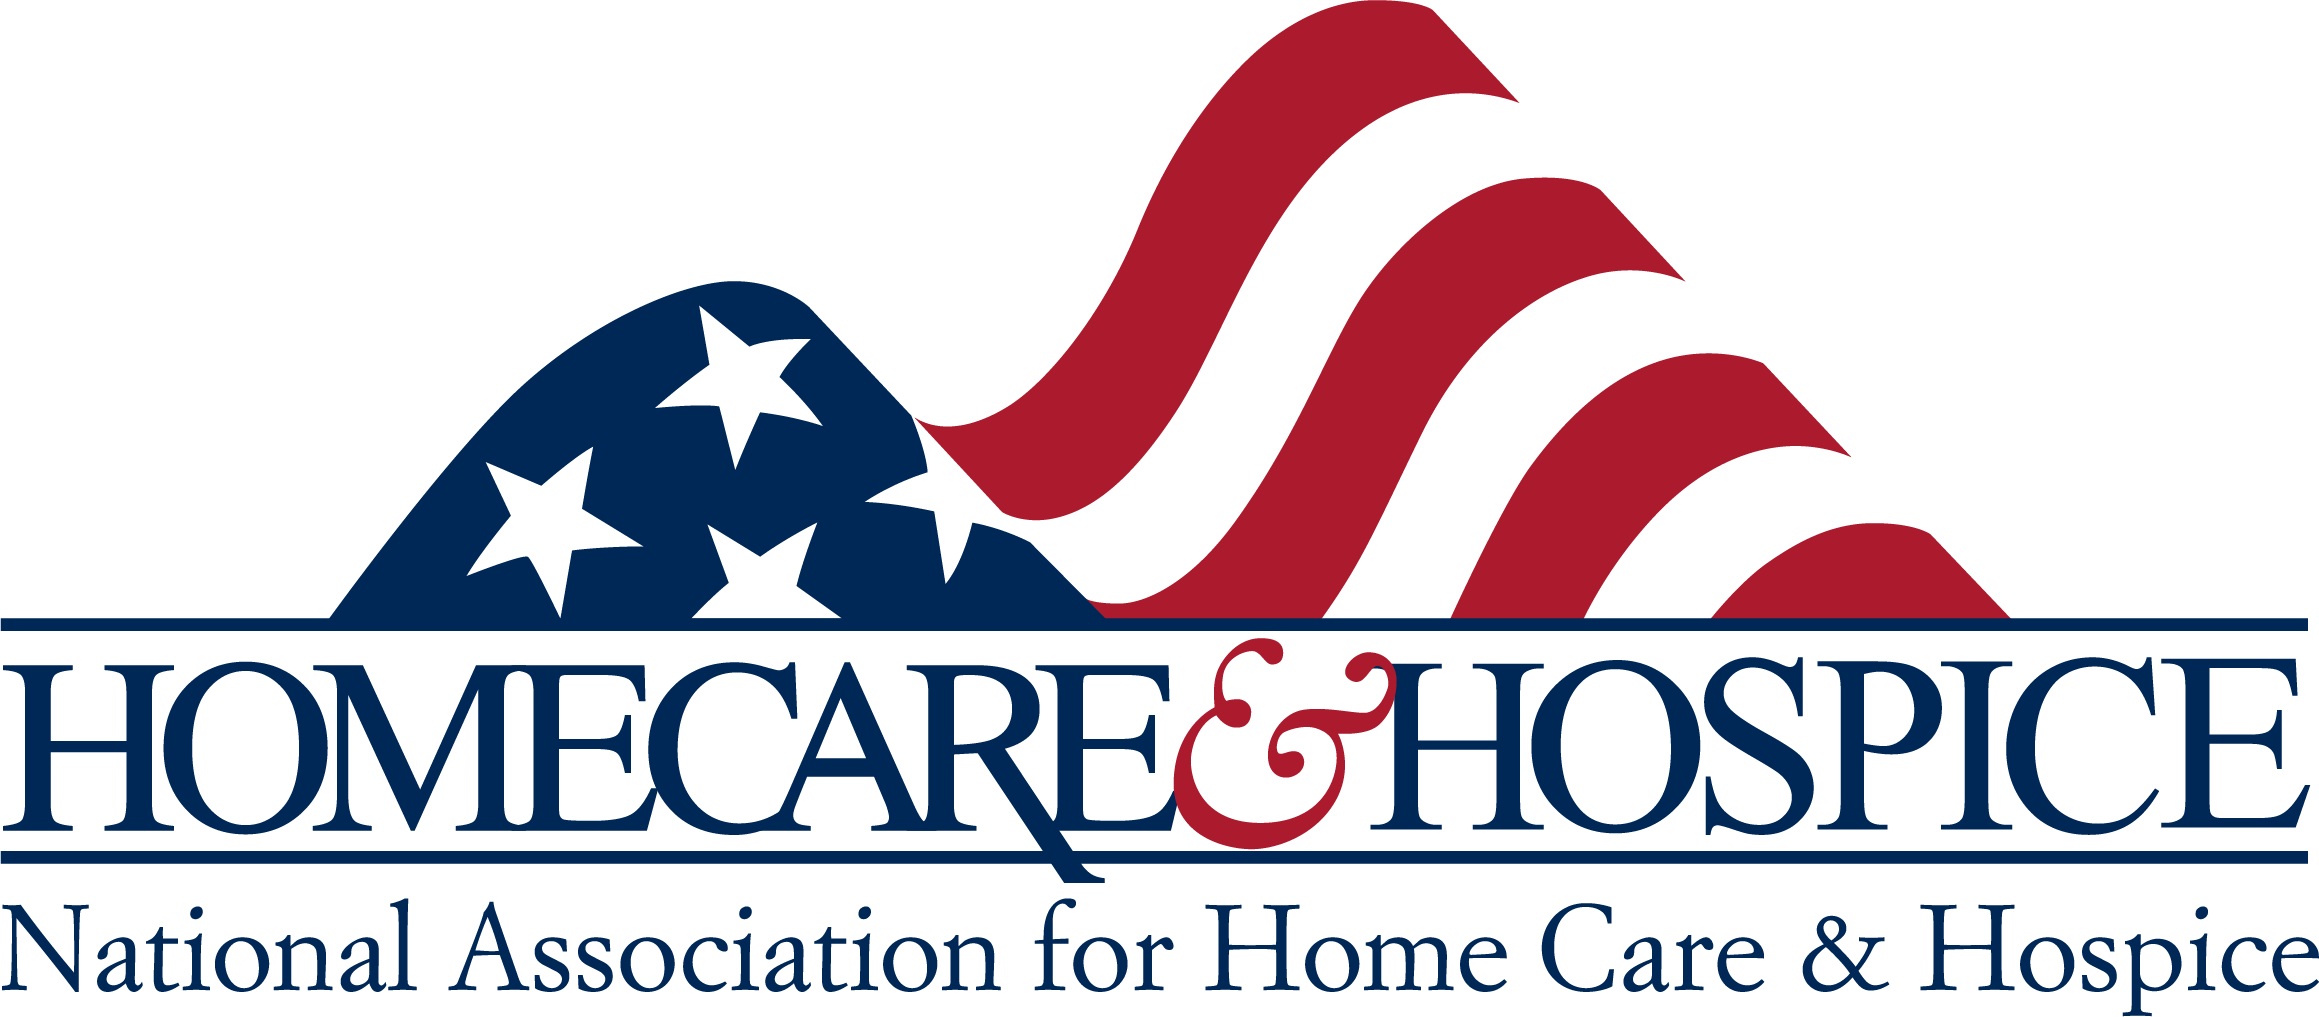 National Association for Home Care & Hospice Logo